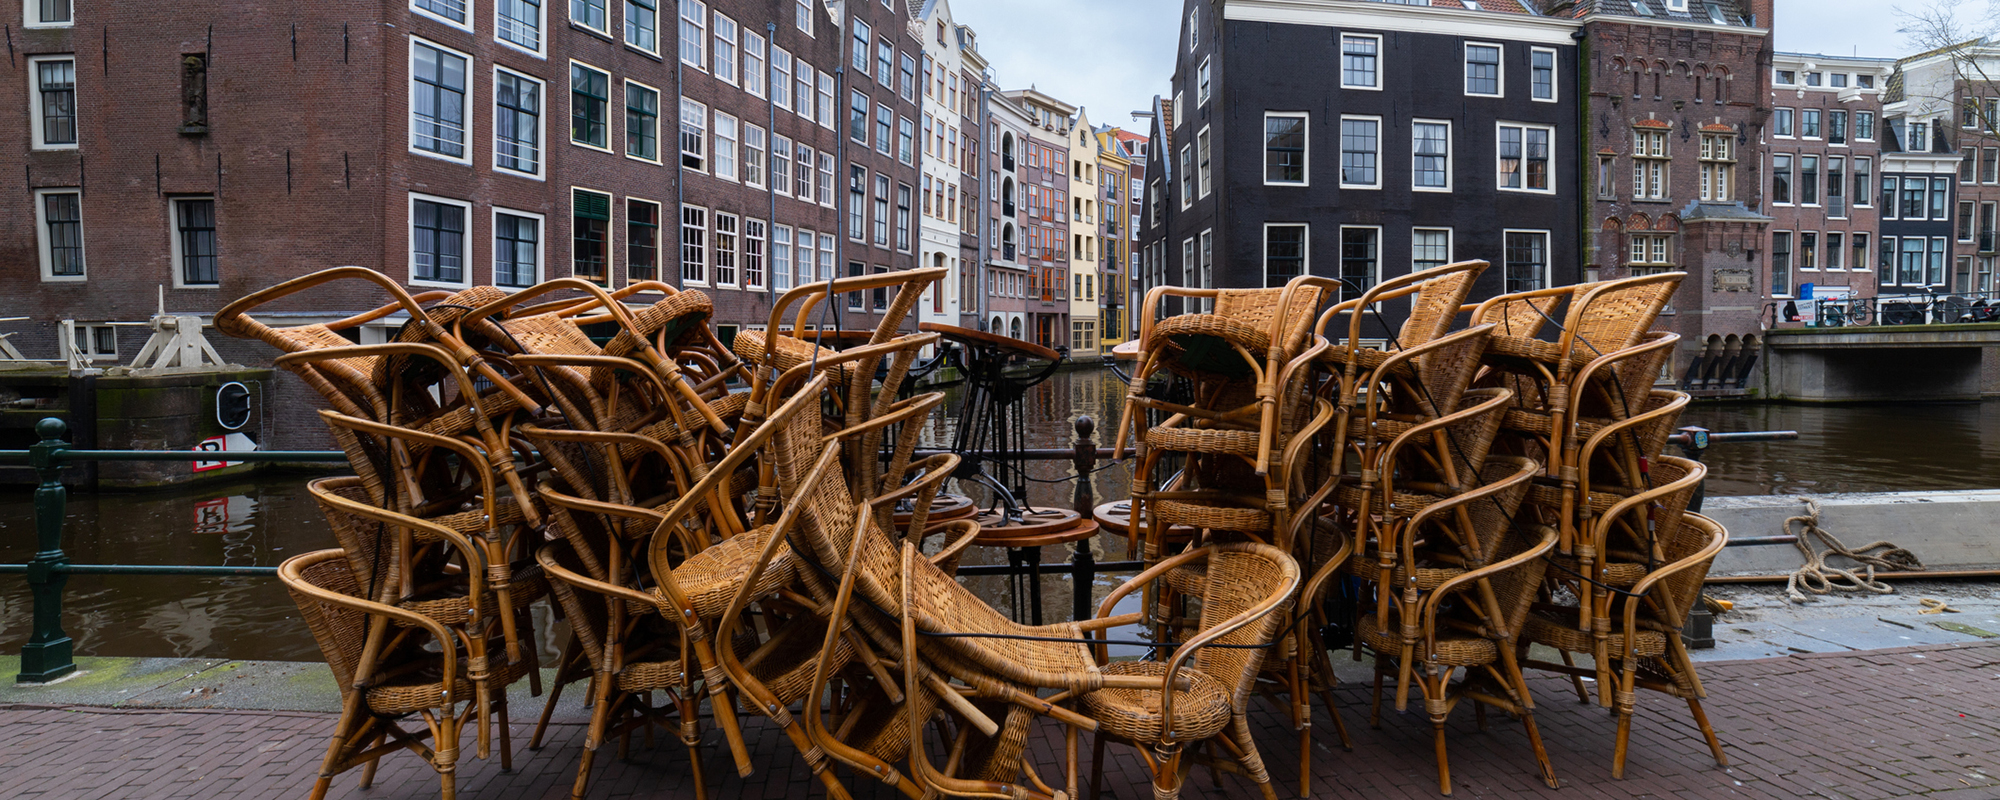 Chairs stacked in the streets of Amsterdam (picture: Getty)